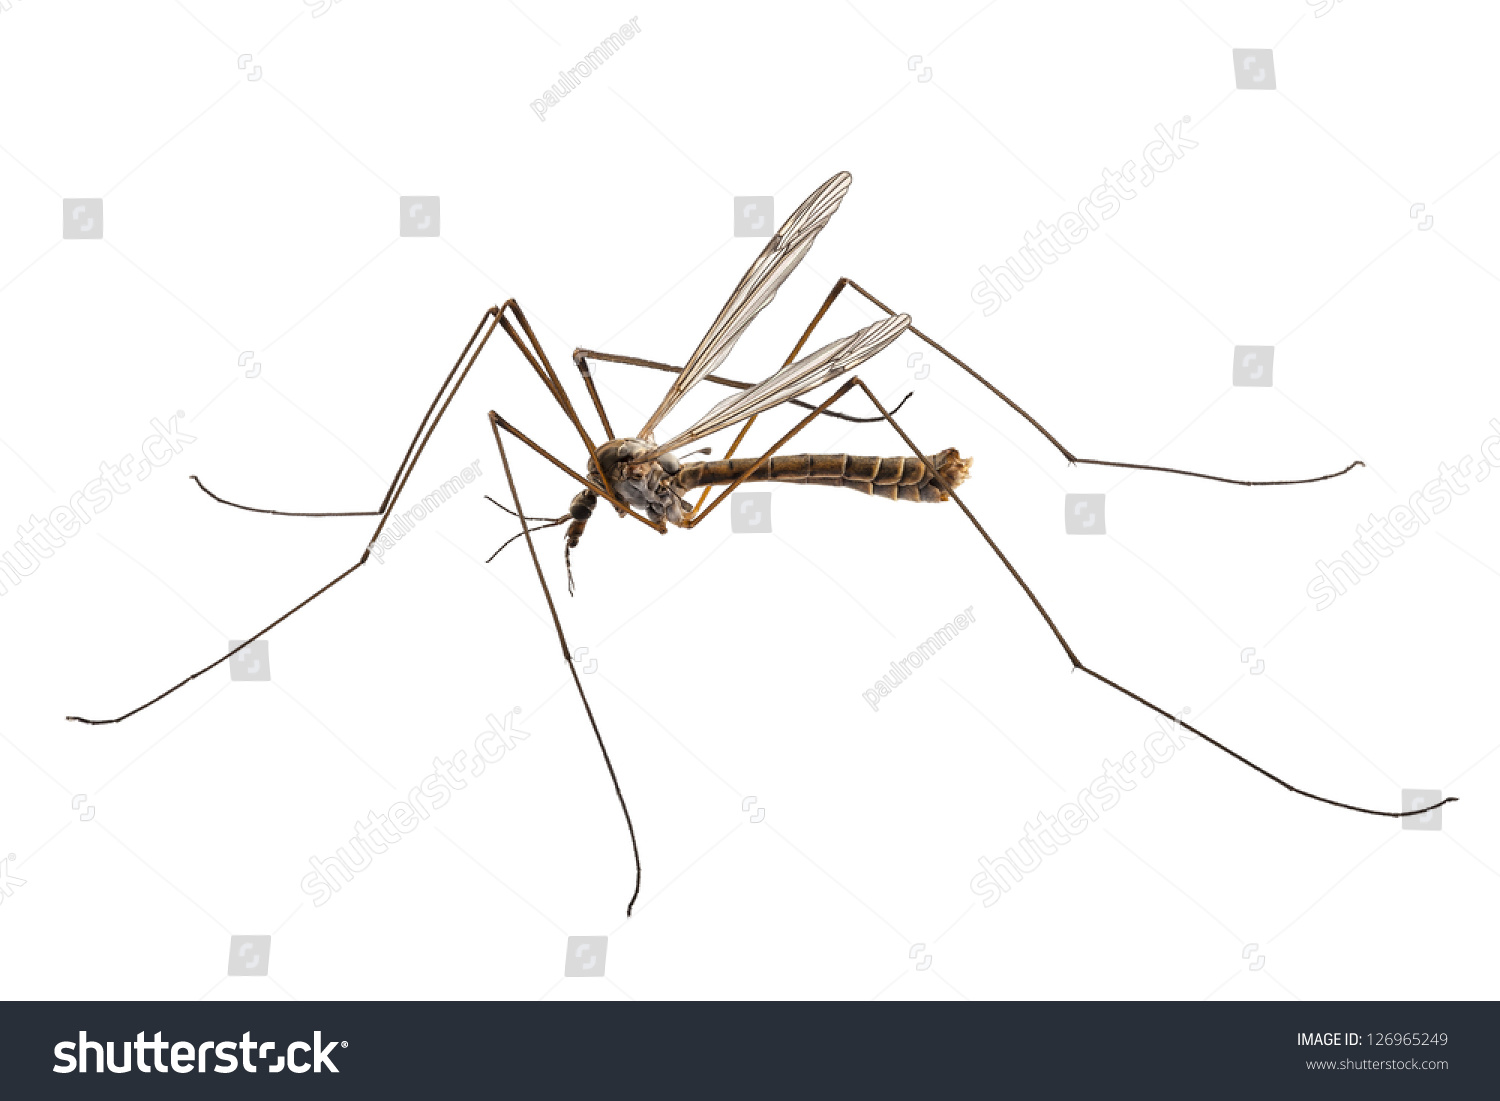 Depth Of Field Photography Definition: Cranefly Species Tipula Oleracea High Definition Stock